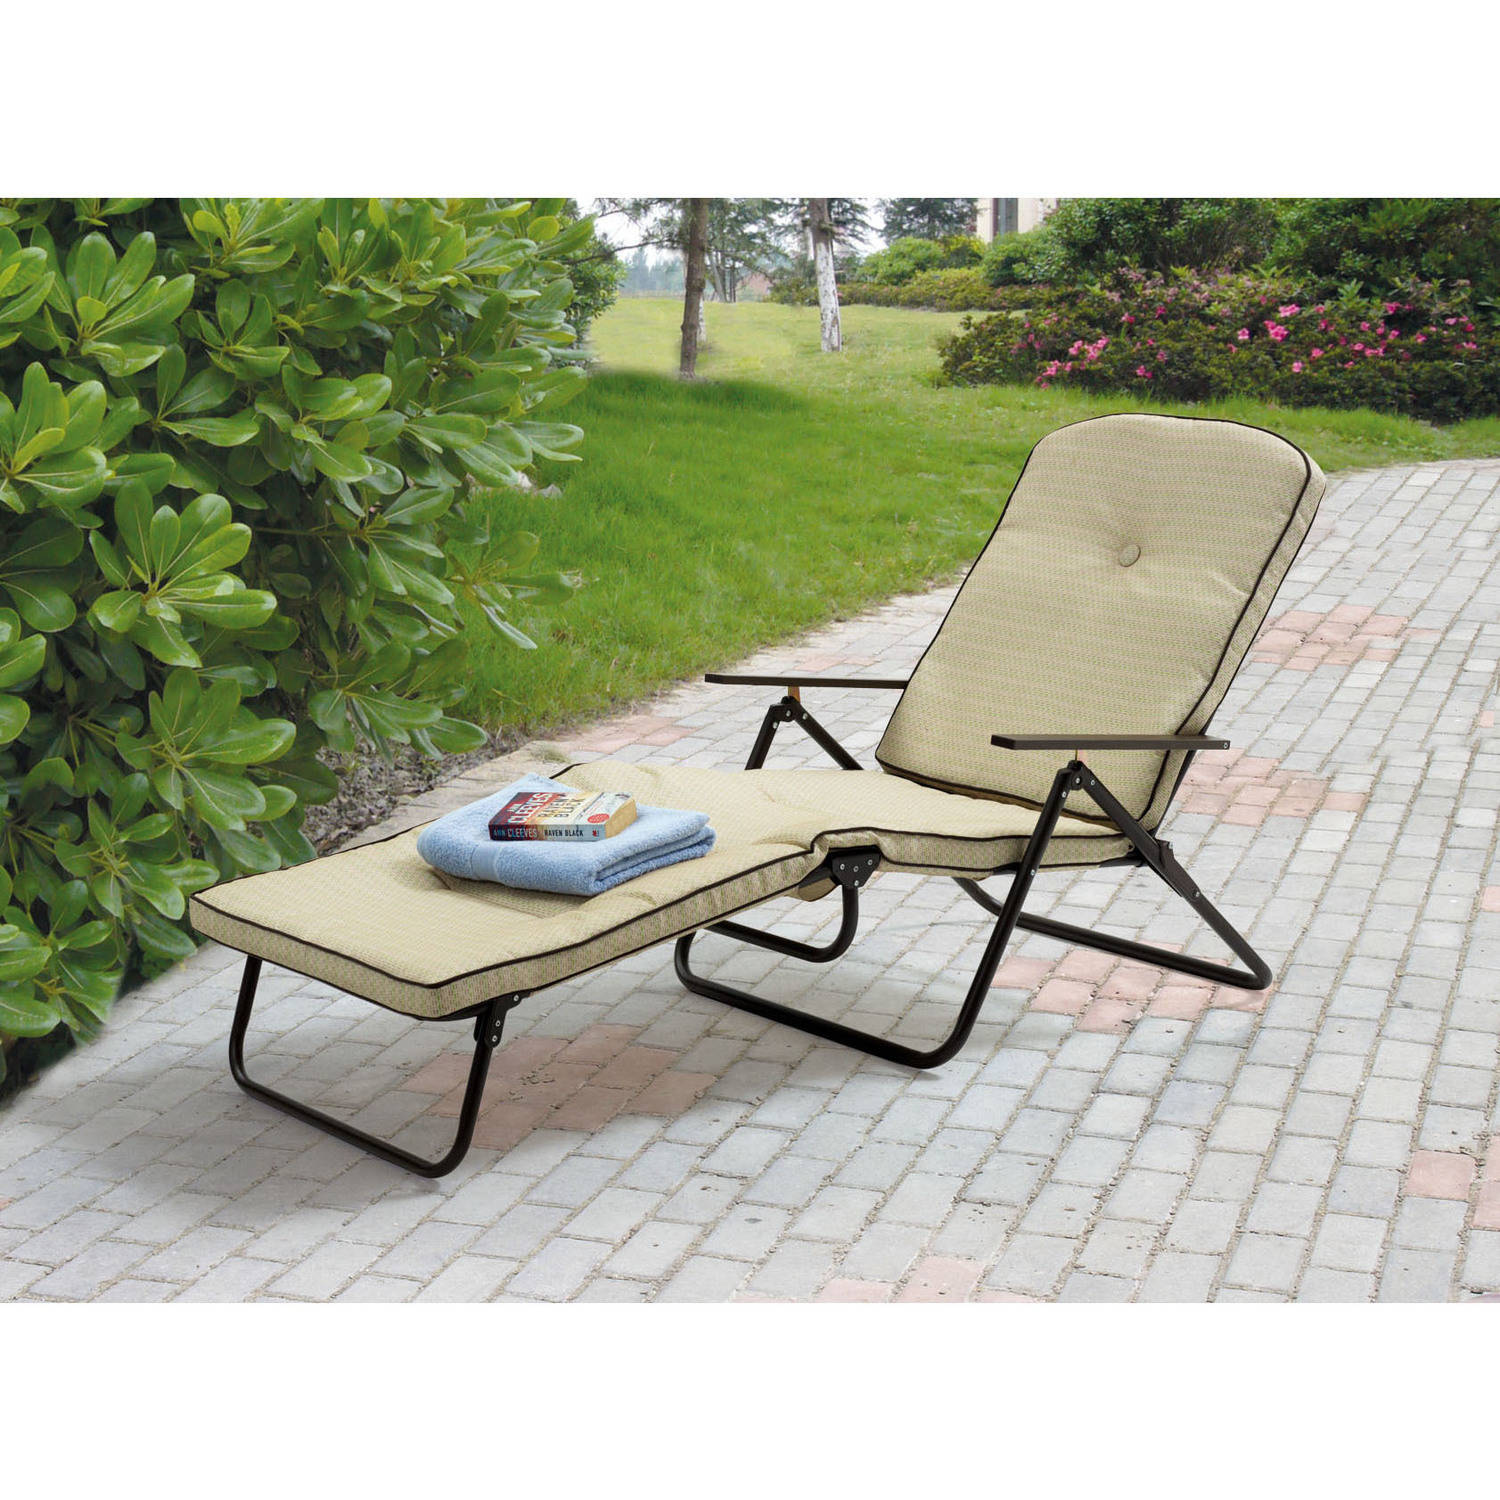 Mainstays Sand Dune Outdoor Padded Folding Chaise Lounge Tan